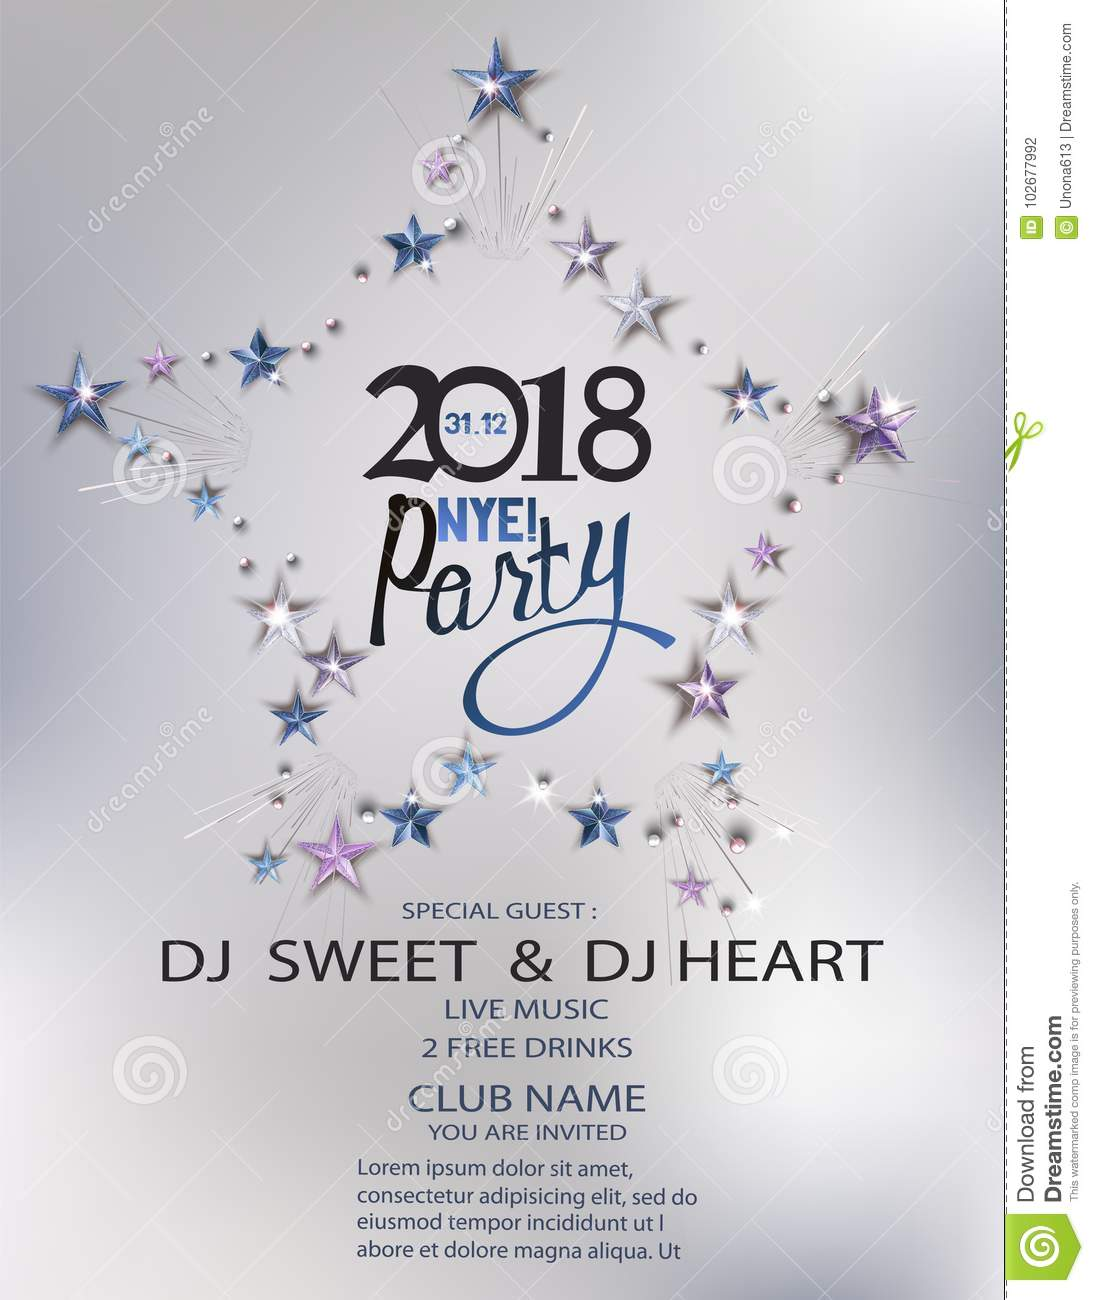 New Year Eve Party Invitation Card With Stars Arranged In Shape Of